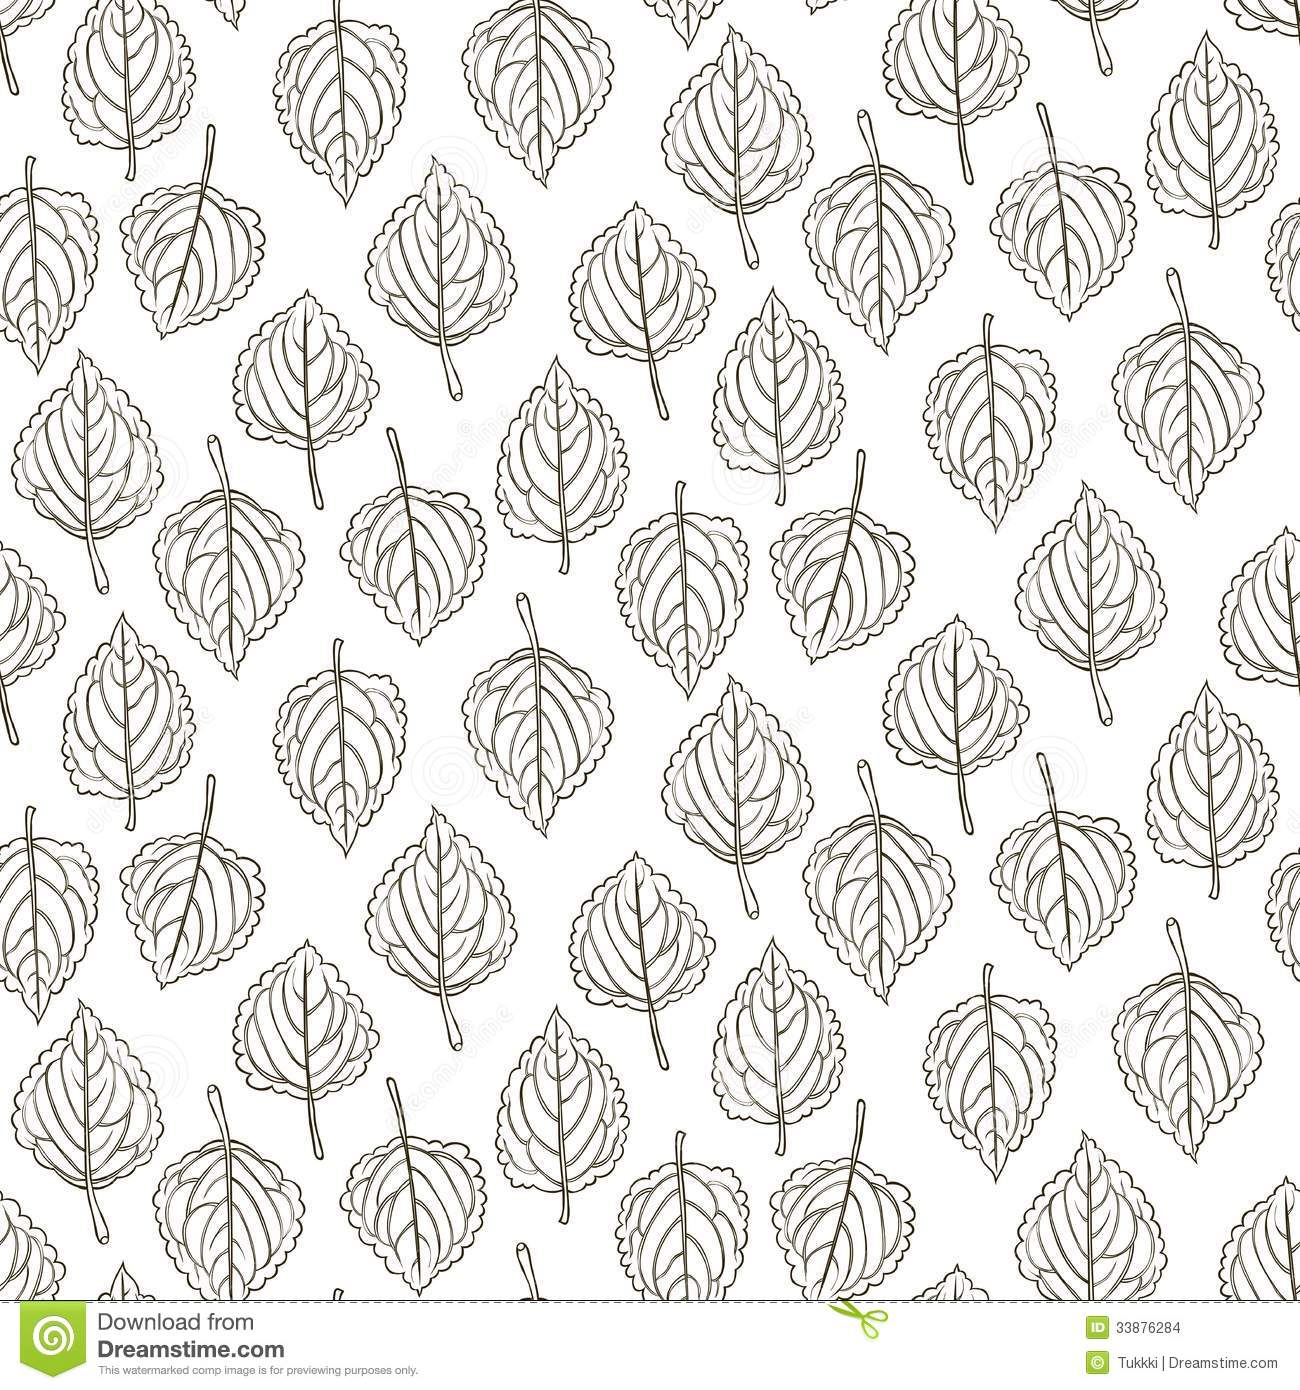 Elegant pattern with leafs drawn in thin lines stock for Line drawing wallpaper